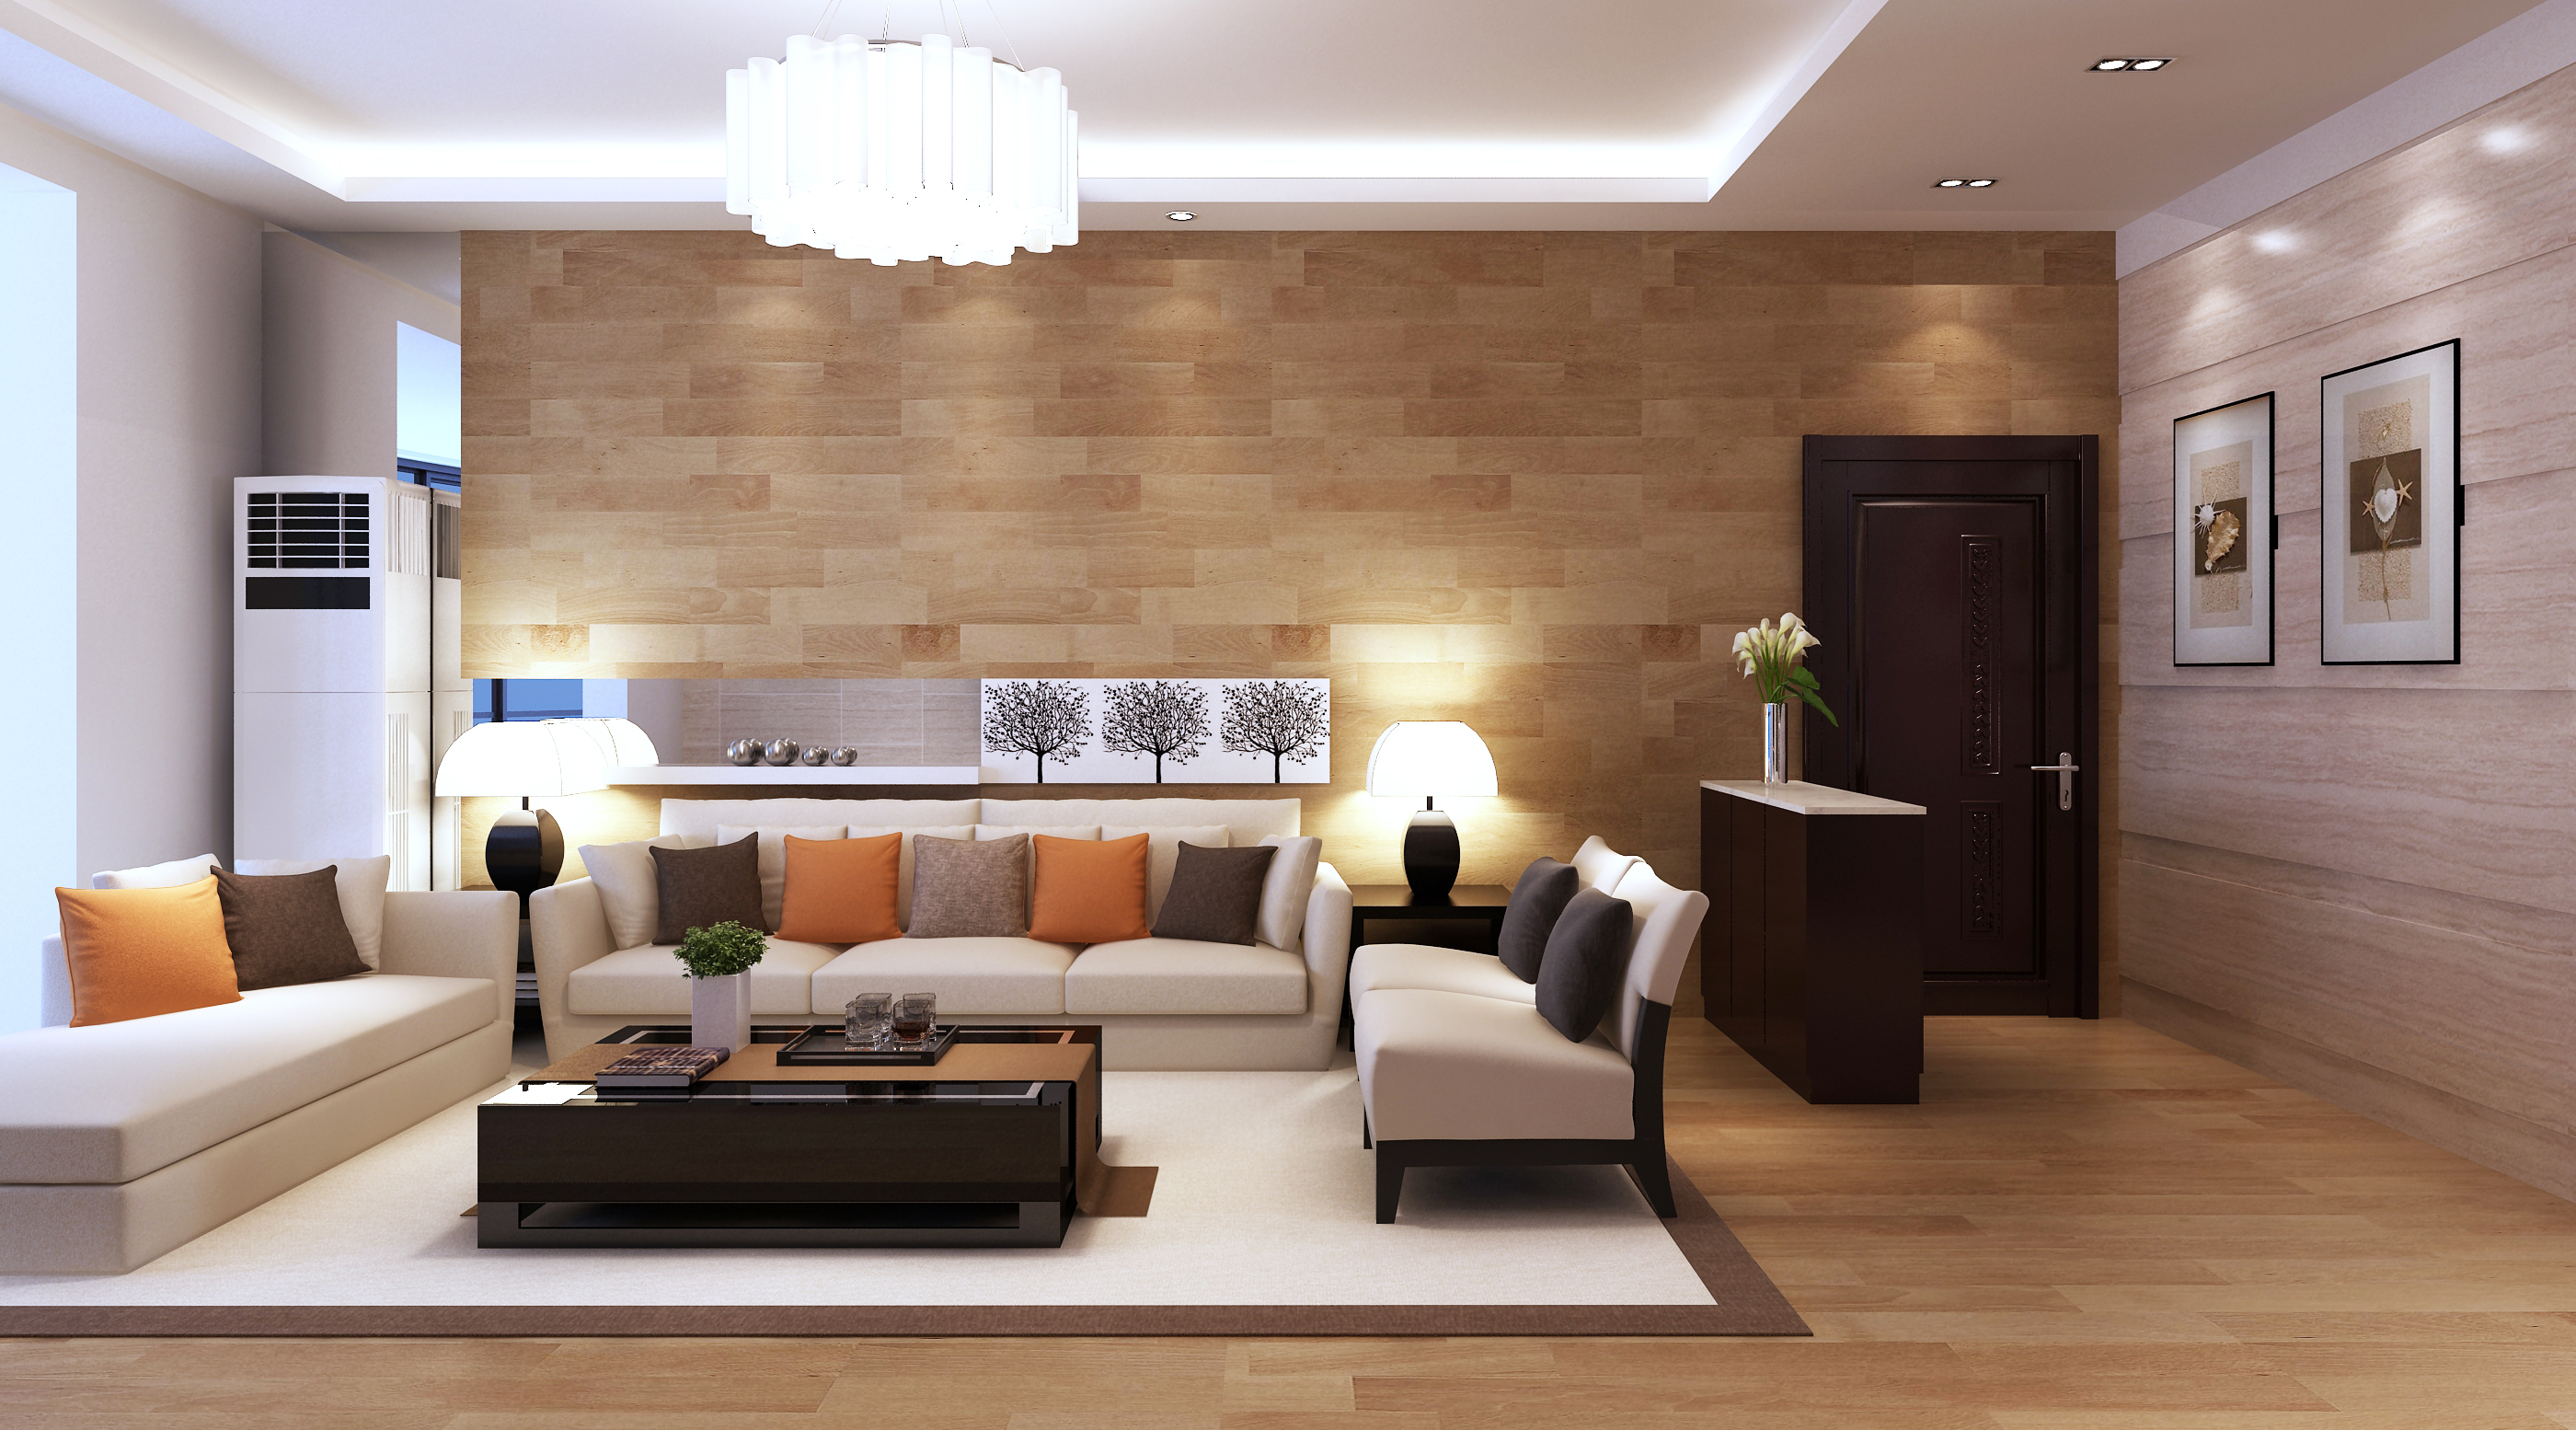 Model Living Room 3d model modern living room architectural | cgtrader